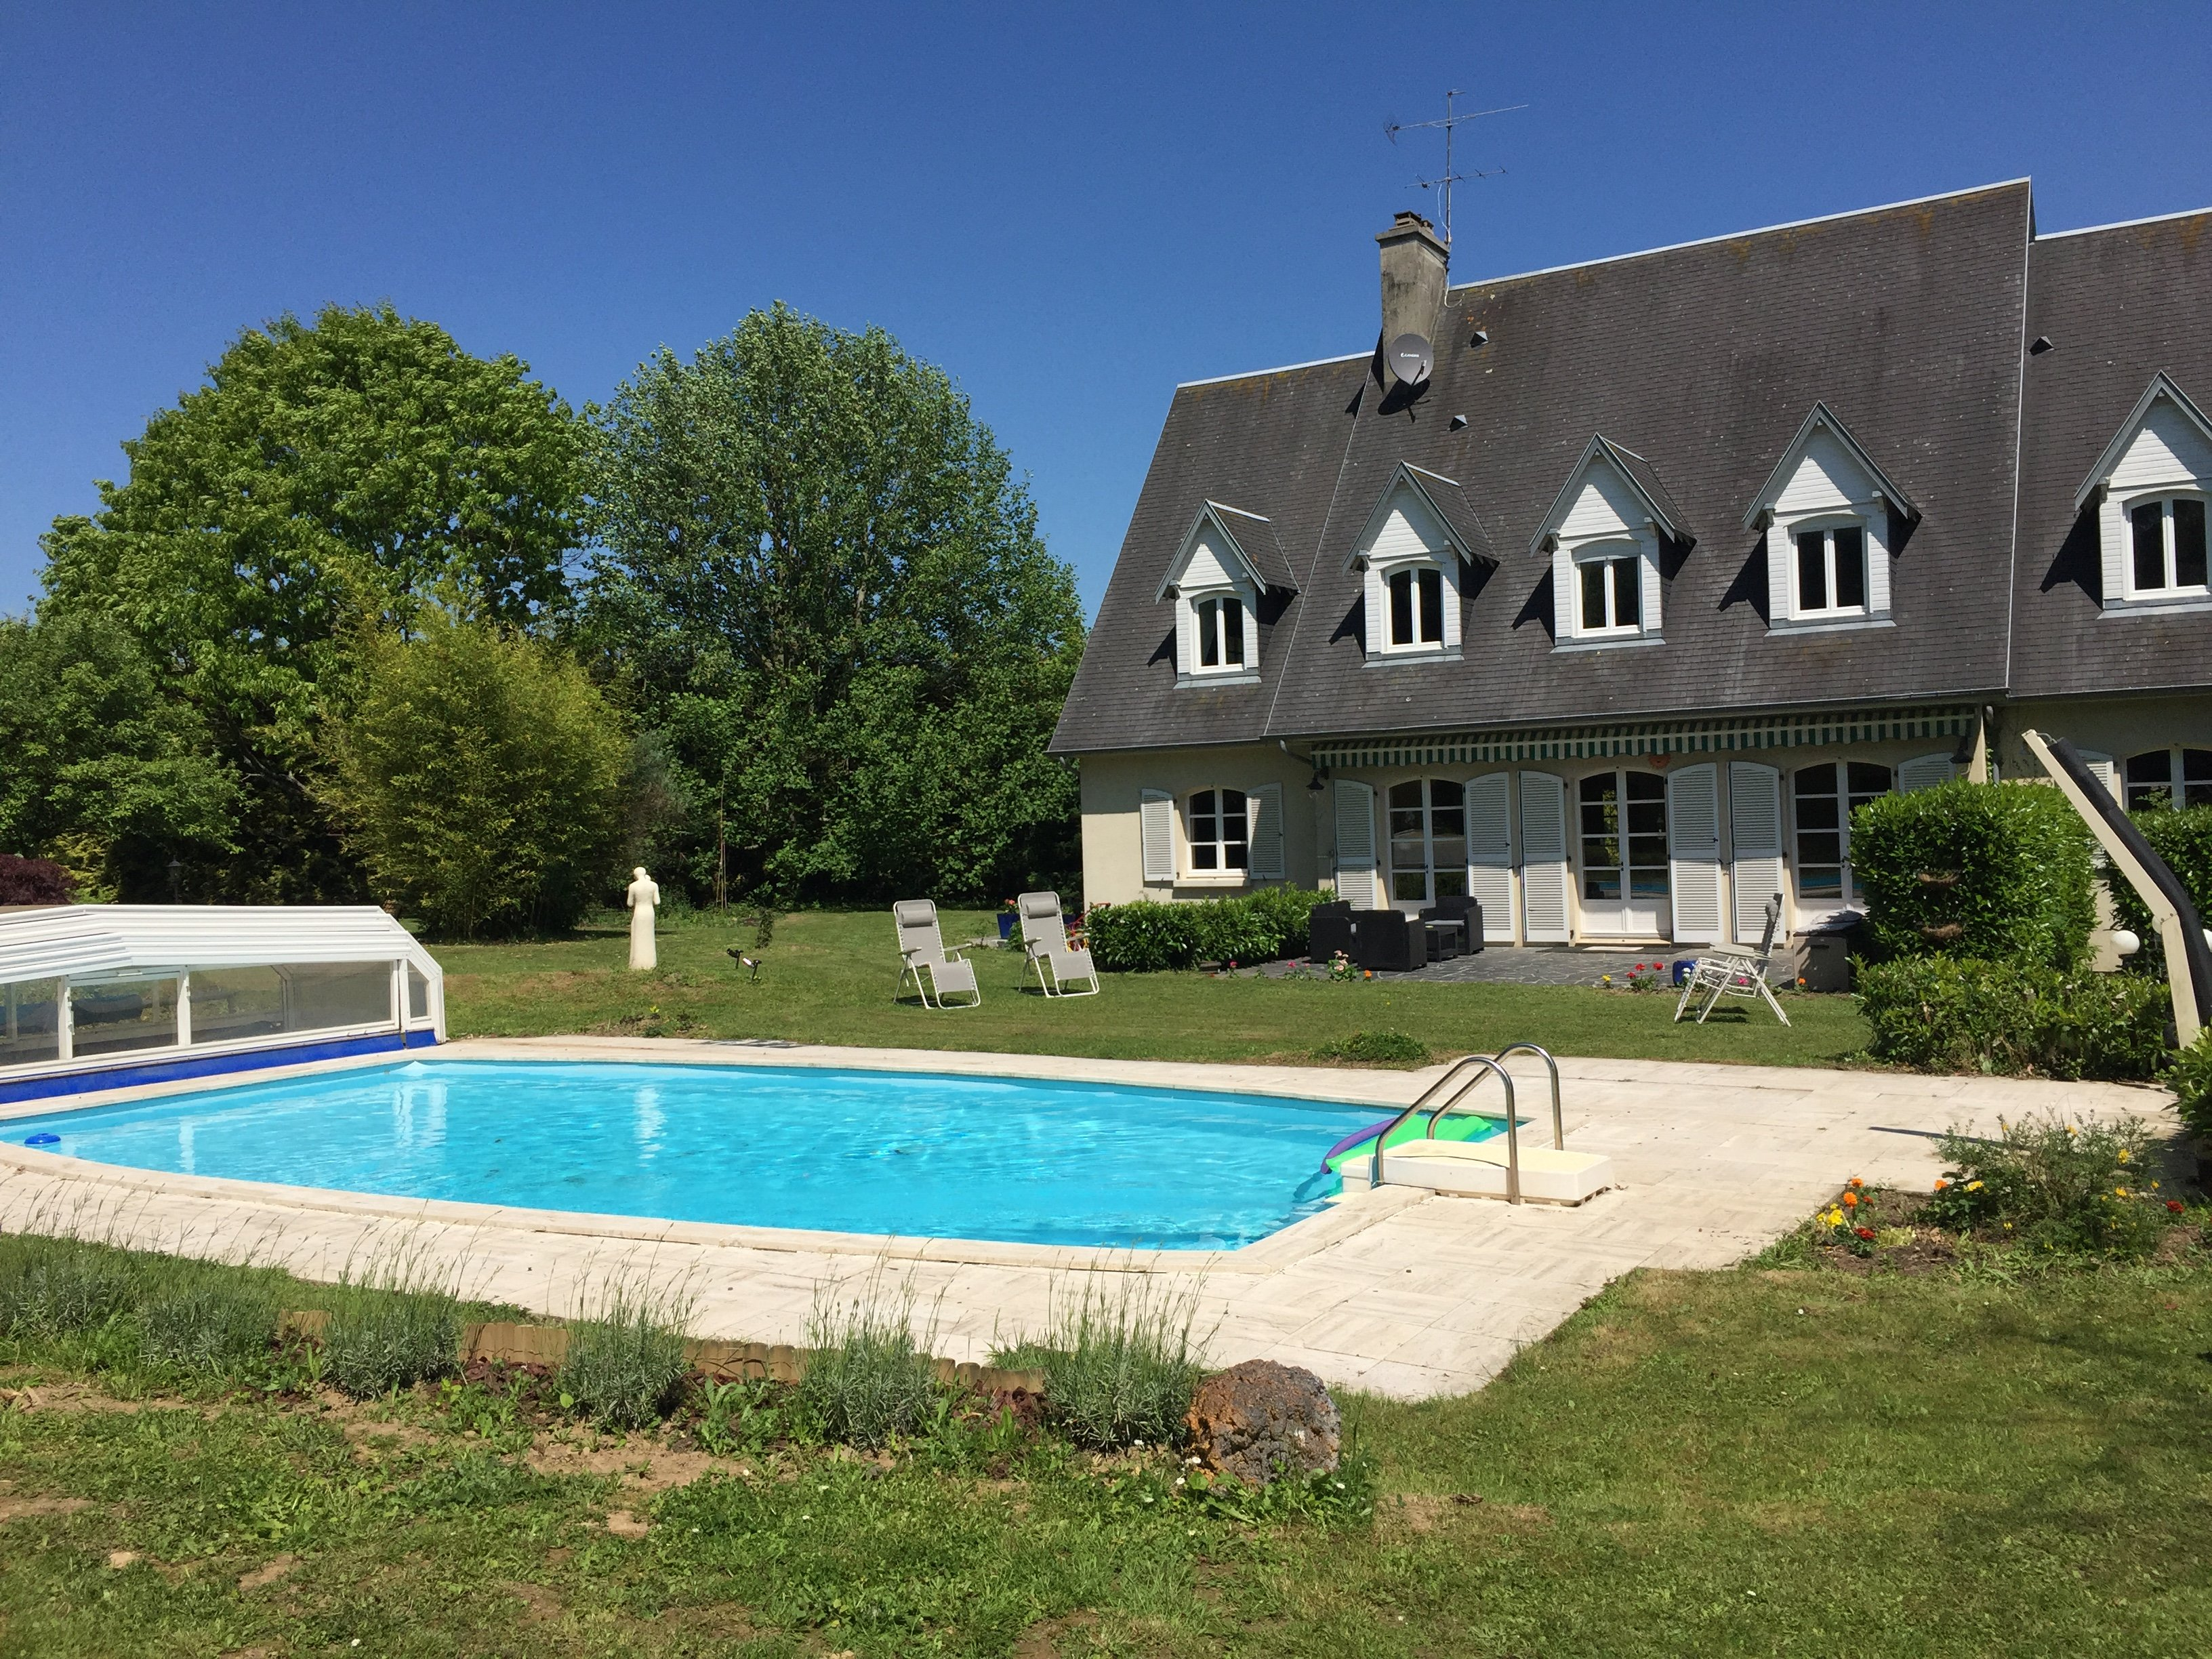 No 16 Chambres D Hotes Tessy sur Vire France B&B Reviews